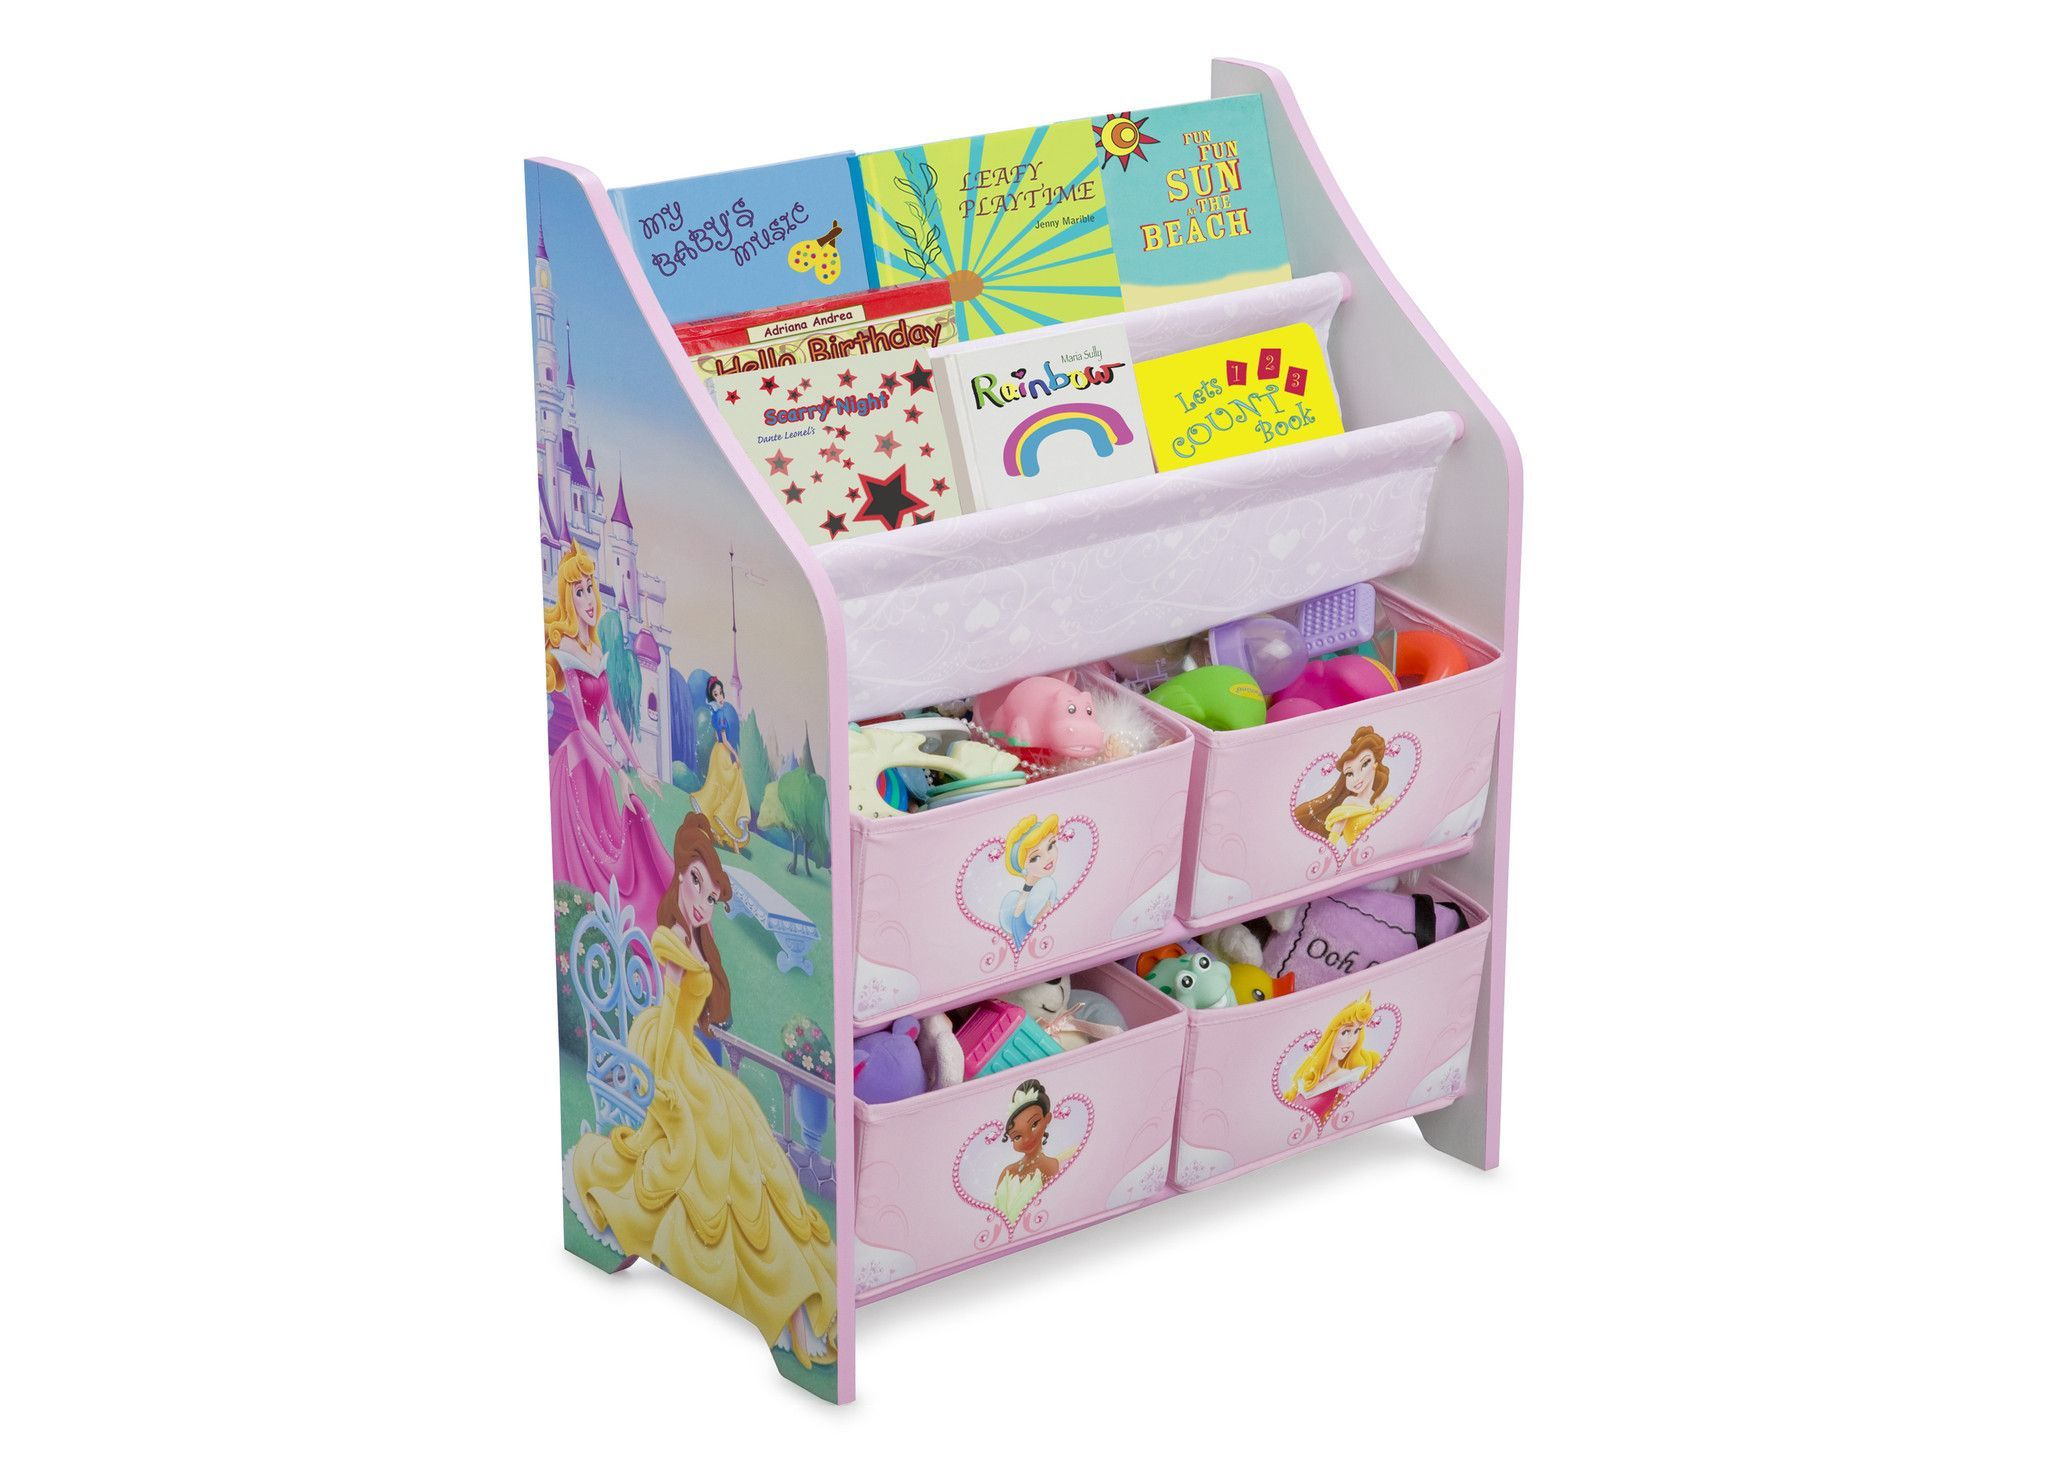 Princess Book Toy Organizer Toy Organization Disney Princess Books Kids Toy Boxes